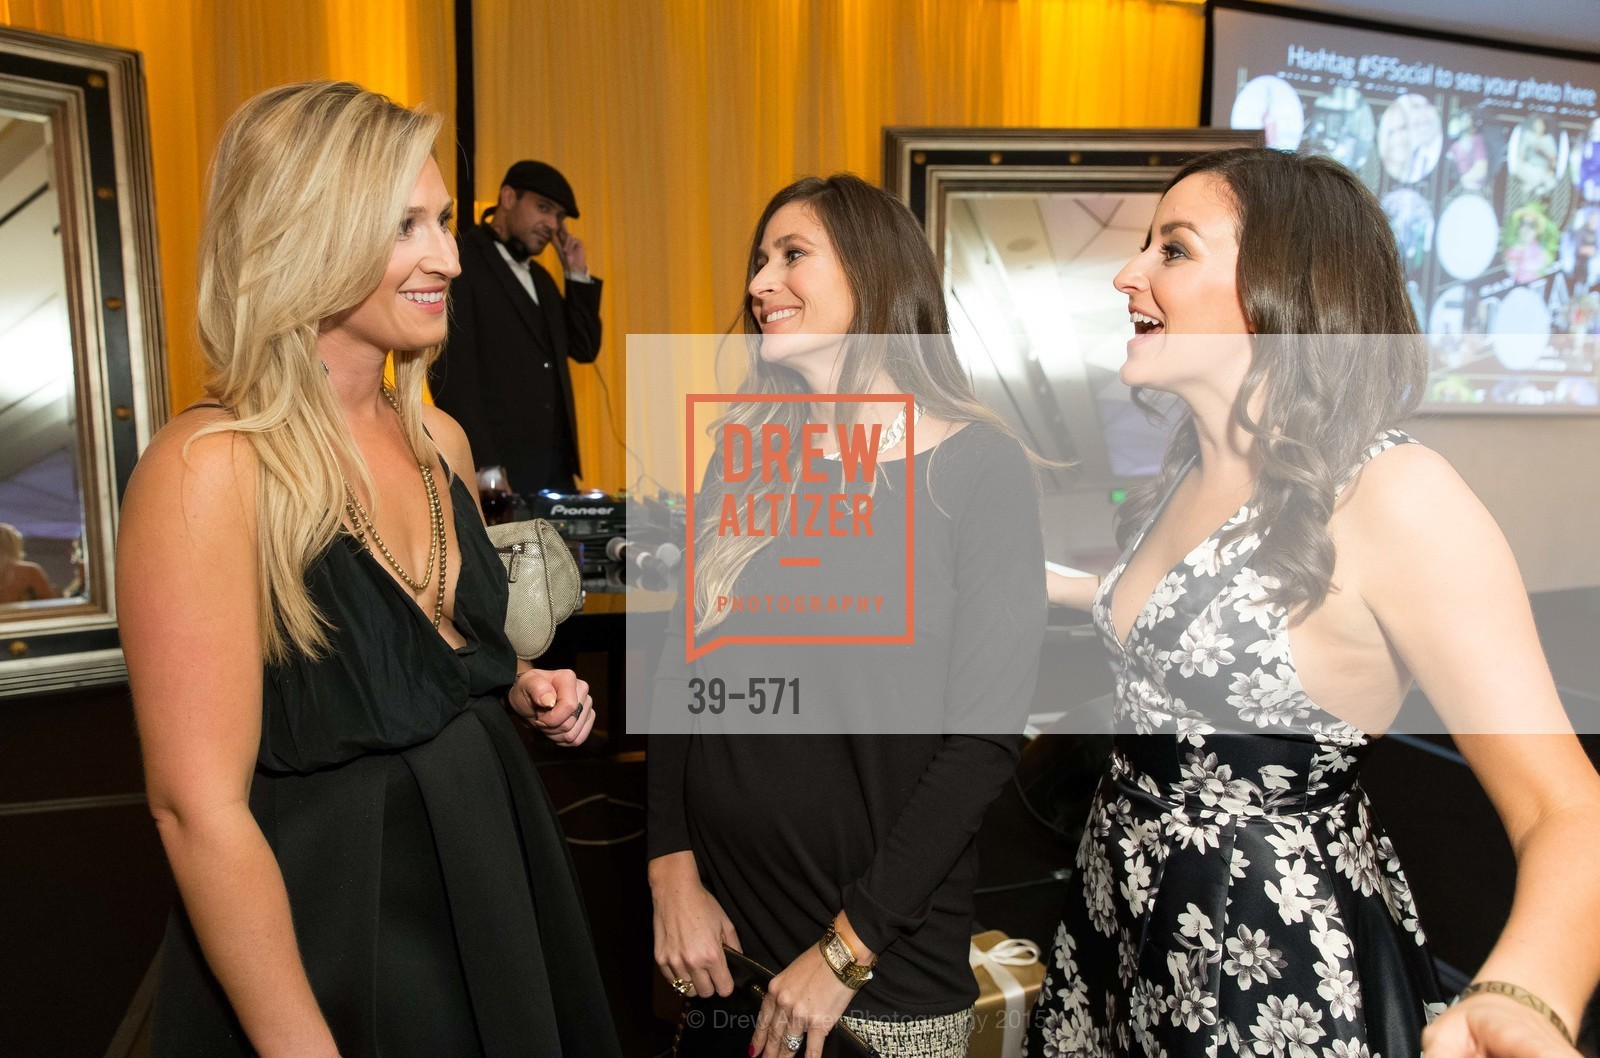 Danielle Leeke, Kelly Boynton, Kaitlyn Landers, The 10th Annual San Francisco Social, W Hotel. 181 3rd St, November 21st, 2015,Drew Altizer, Drew Altizer Photography, full-service event agency, private events, San Francisco photographer, photographer California